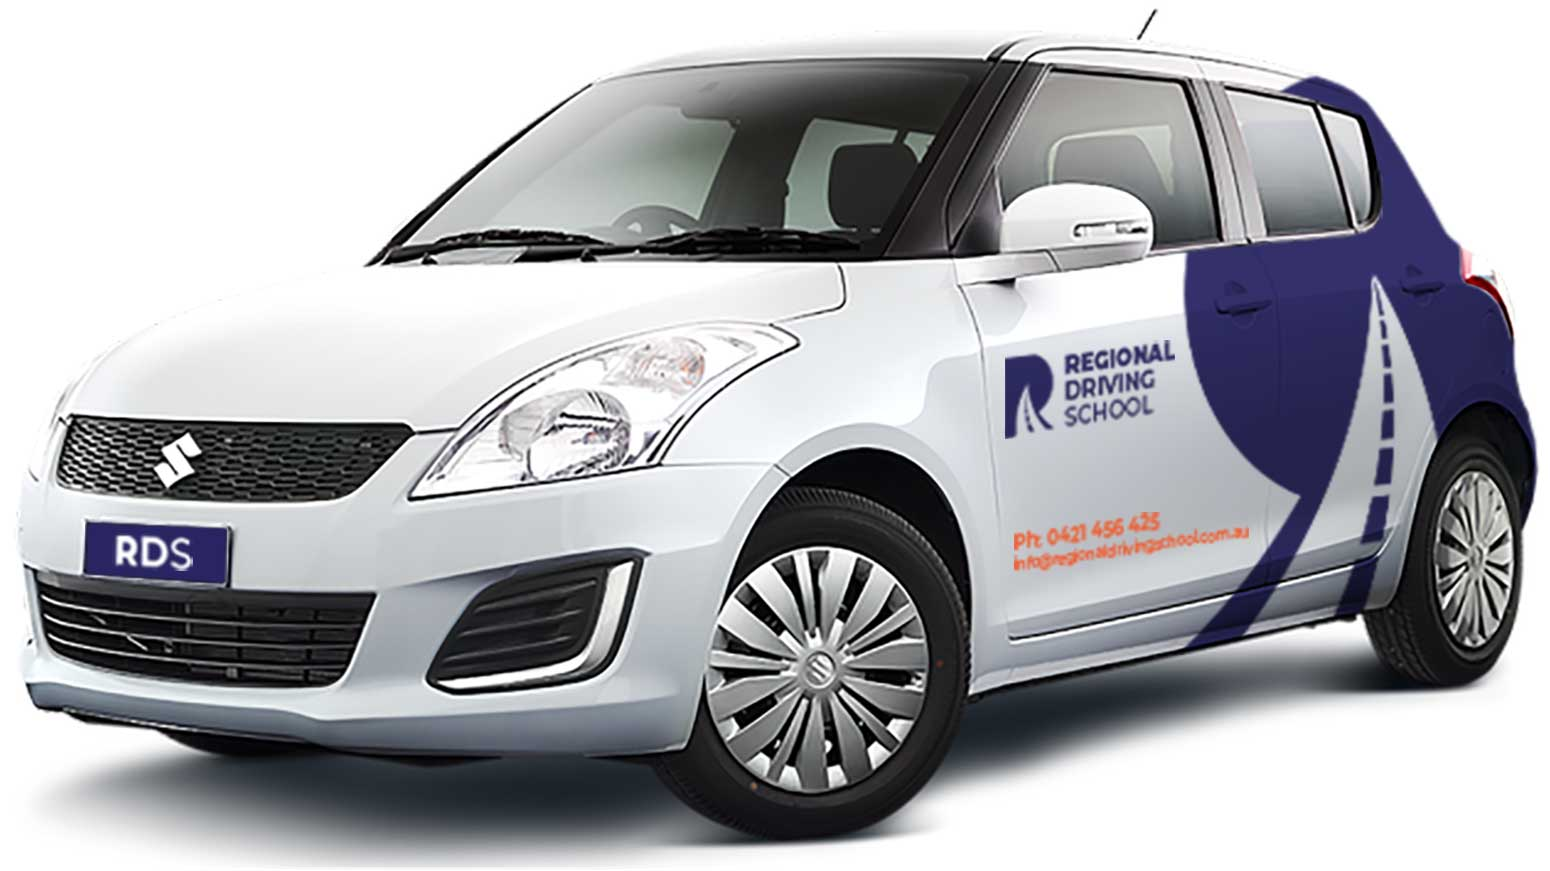 Regional Driving School, Driving Instructors in Bendigo